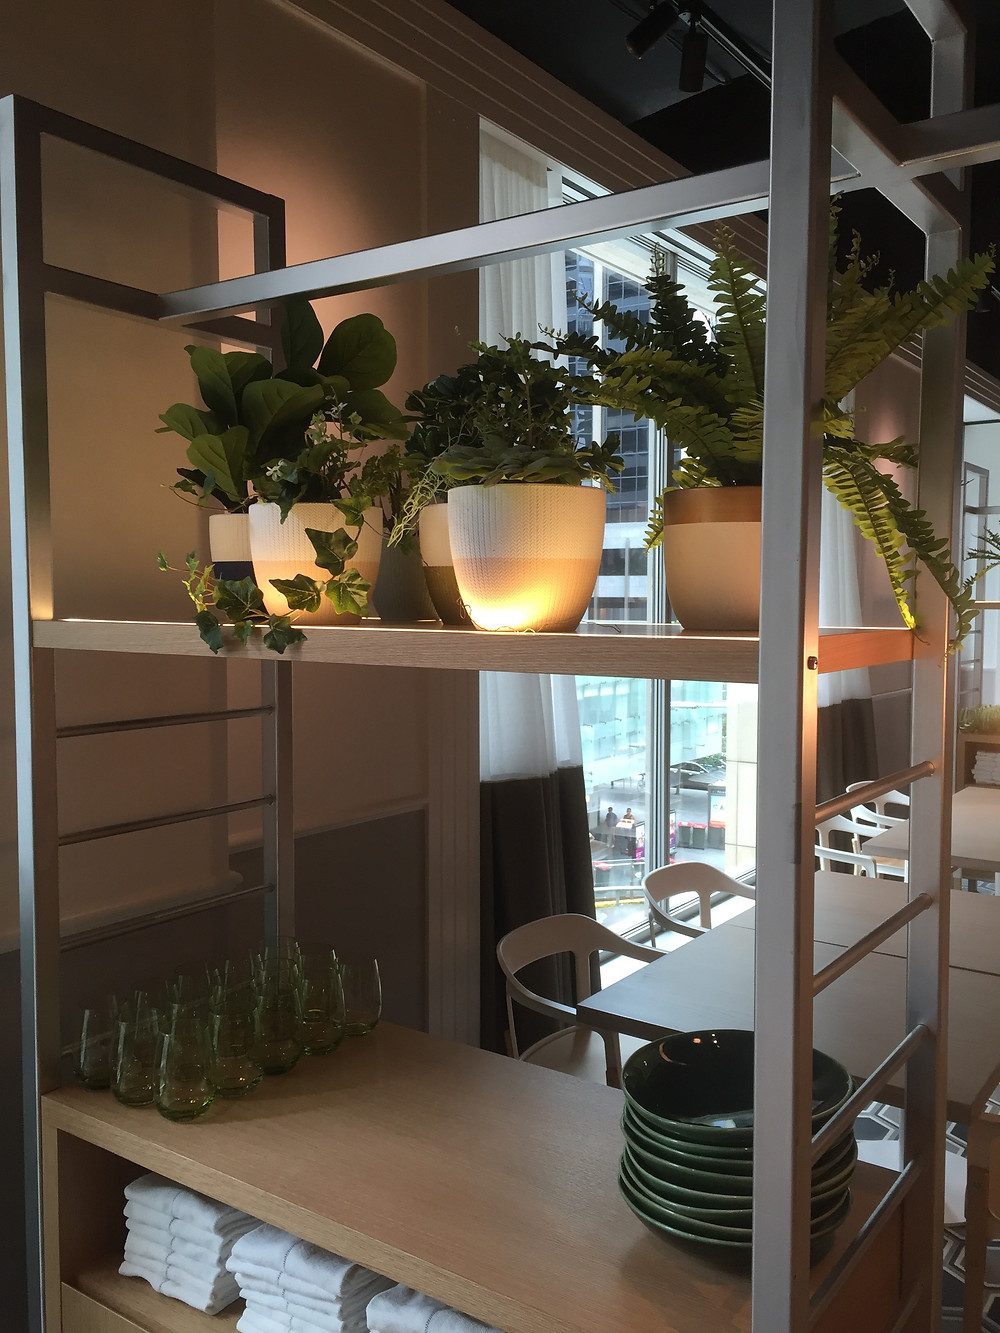 potted plants fiddle leaf and fern soften the setting of a Corporate Restaurant